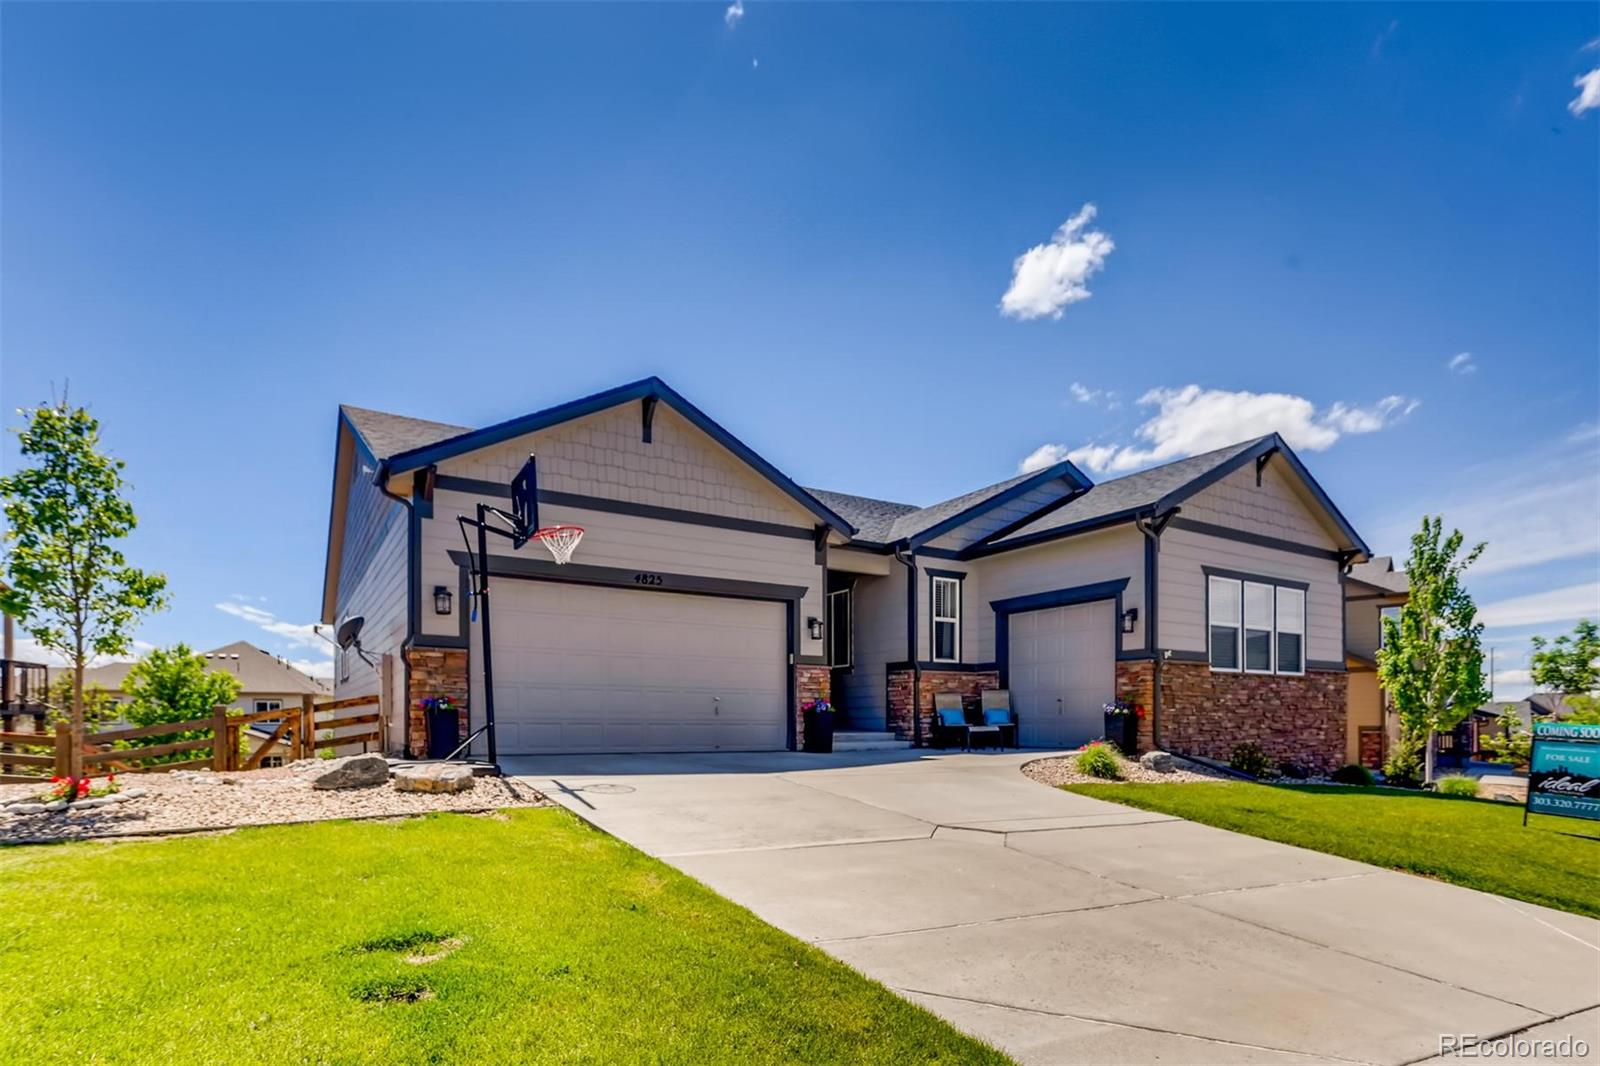 4825 S Riviera Way Property Photo - Aurora, CO real estate listing